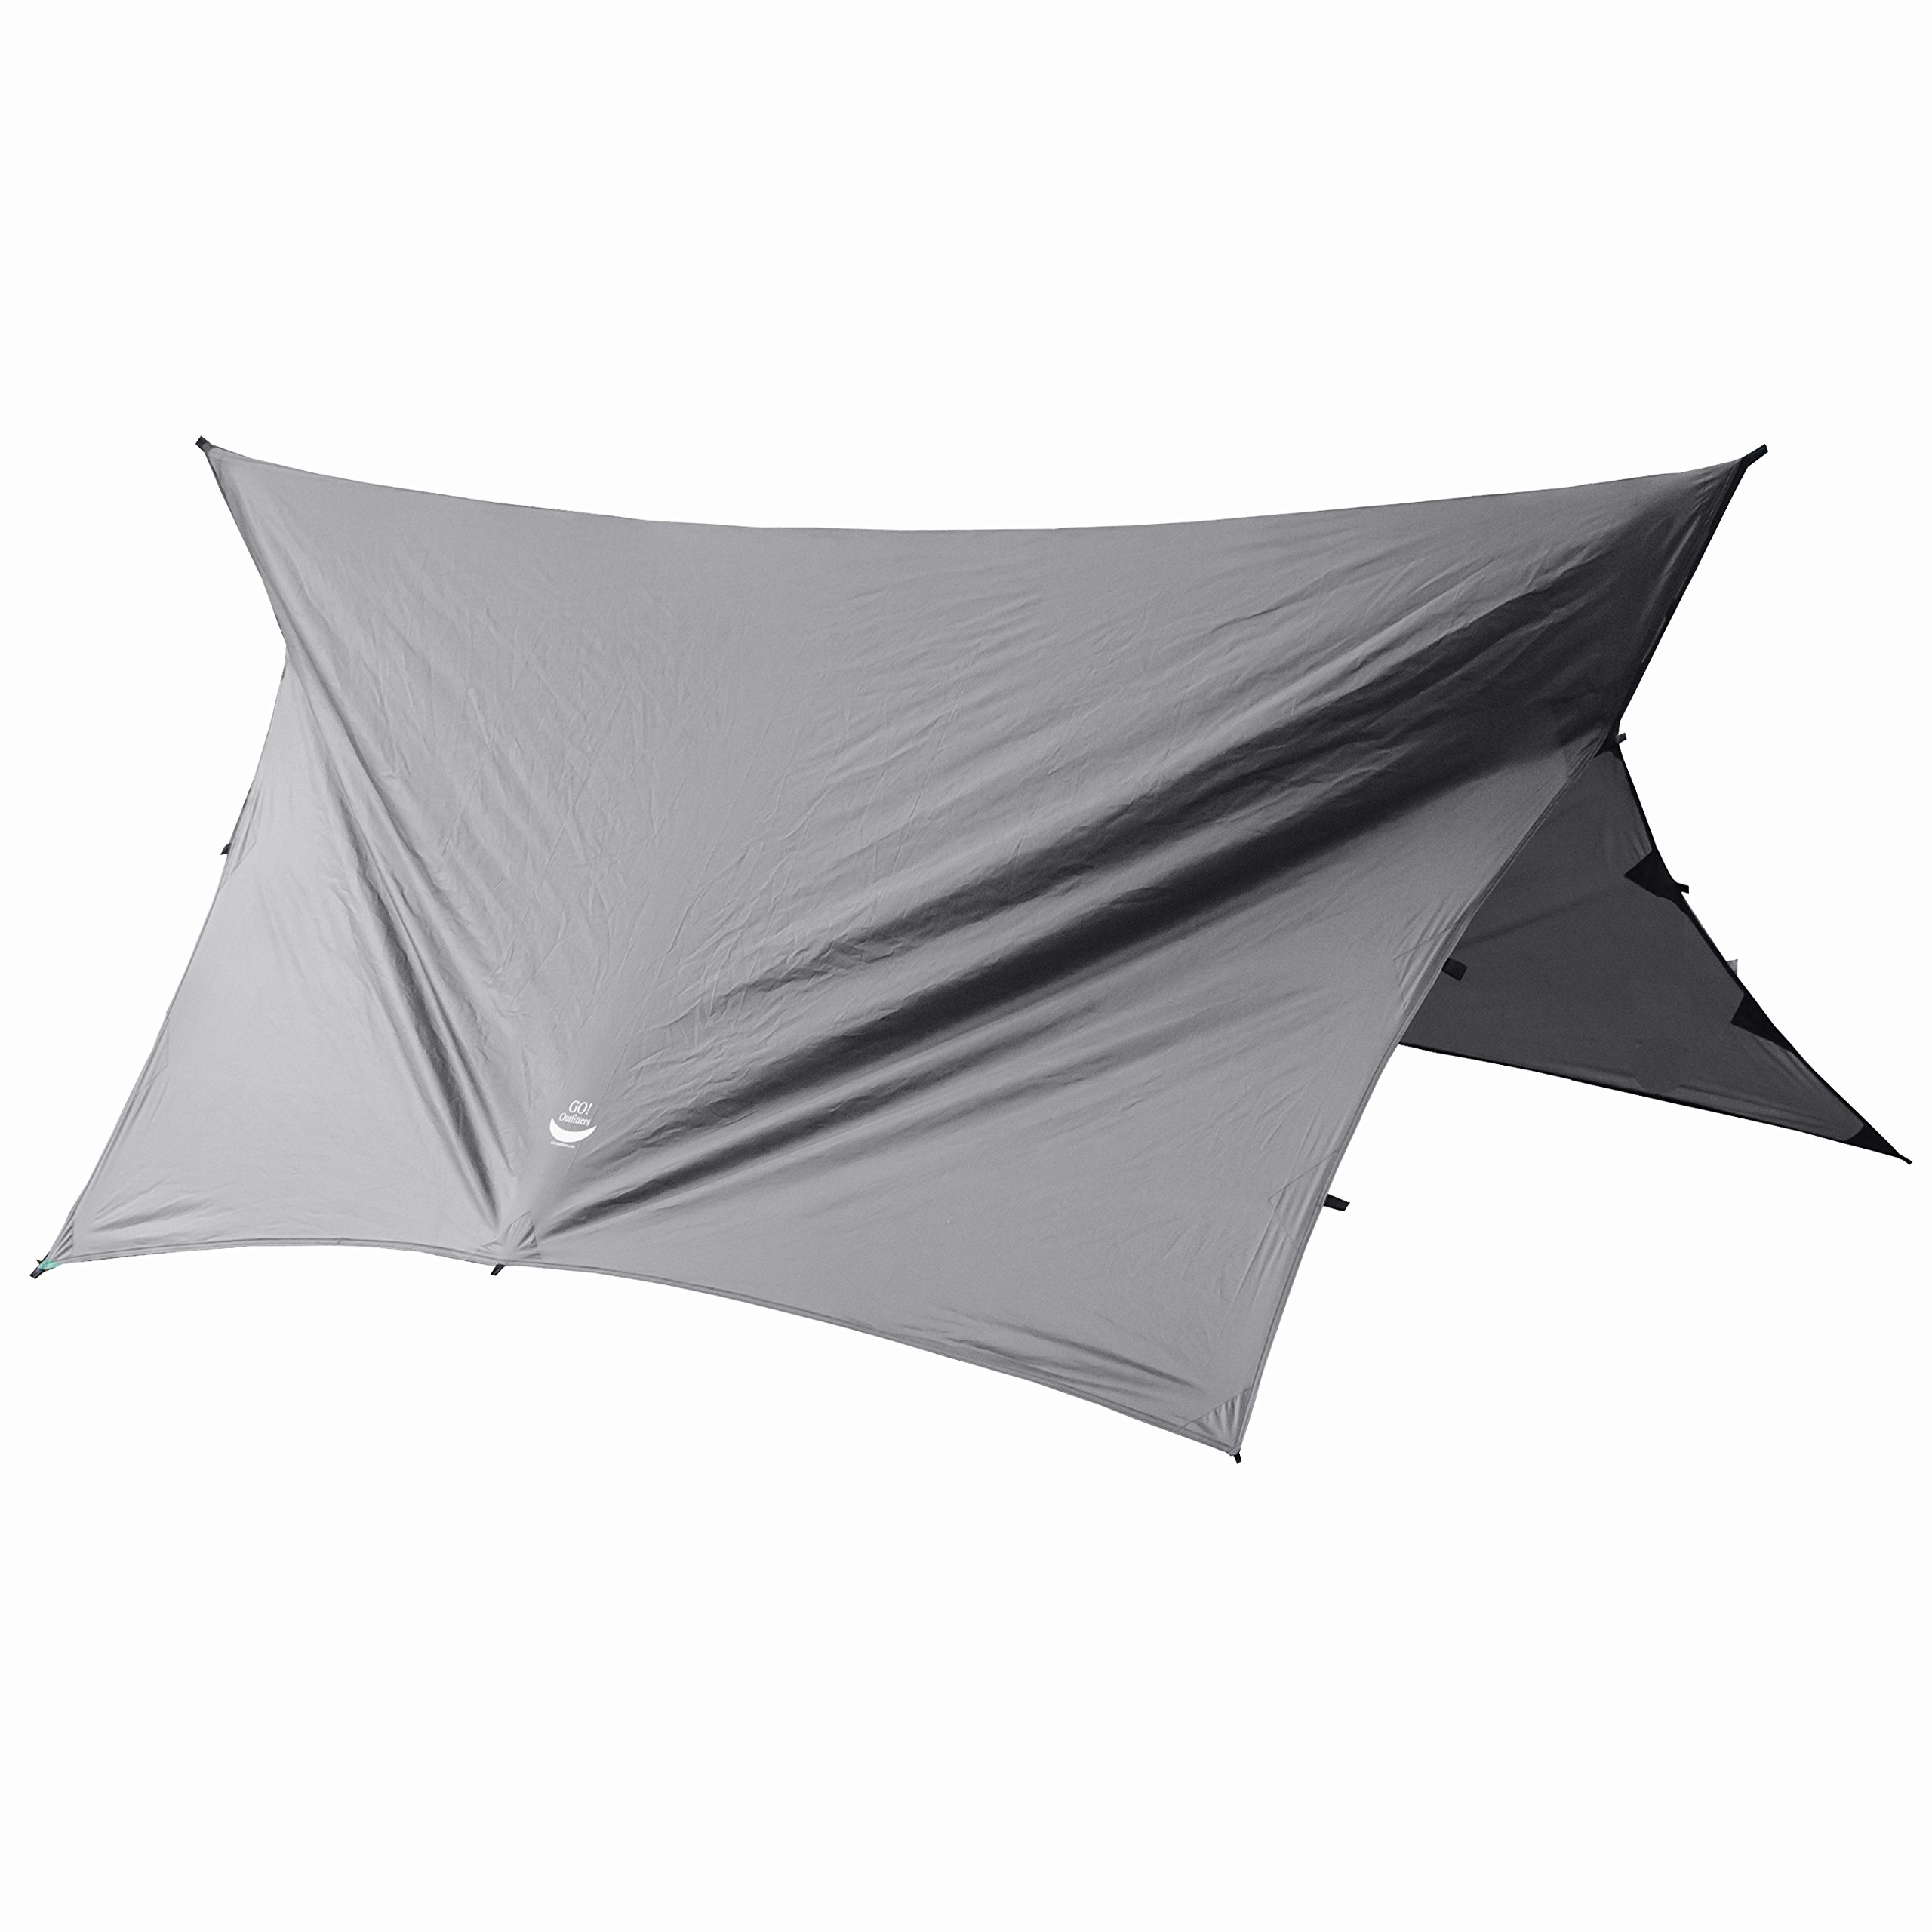 Go Outfitters Apex Camping Shelter/Hammock Tarp, Slate Gray by Go Outfitters